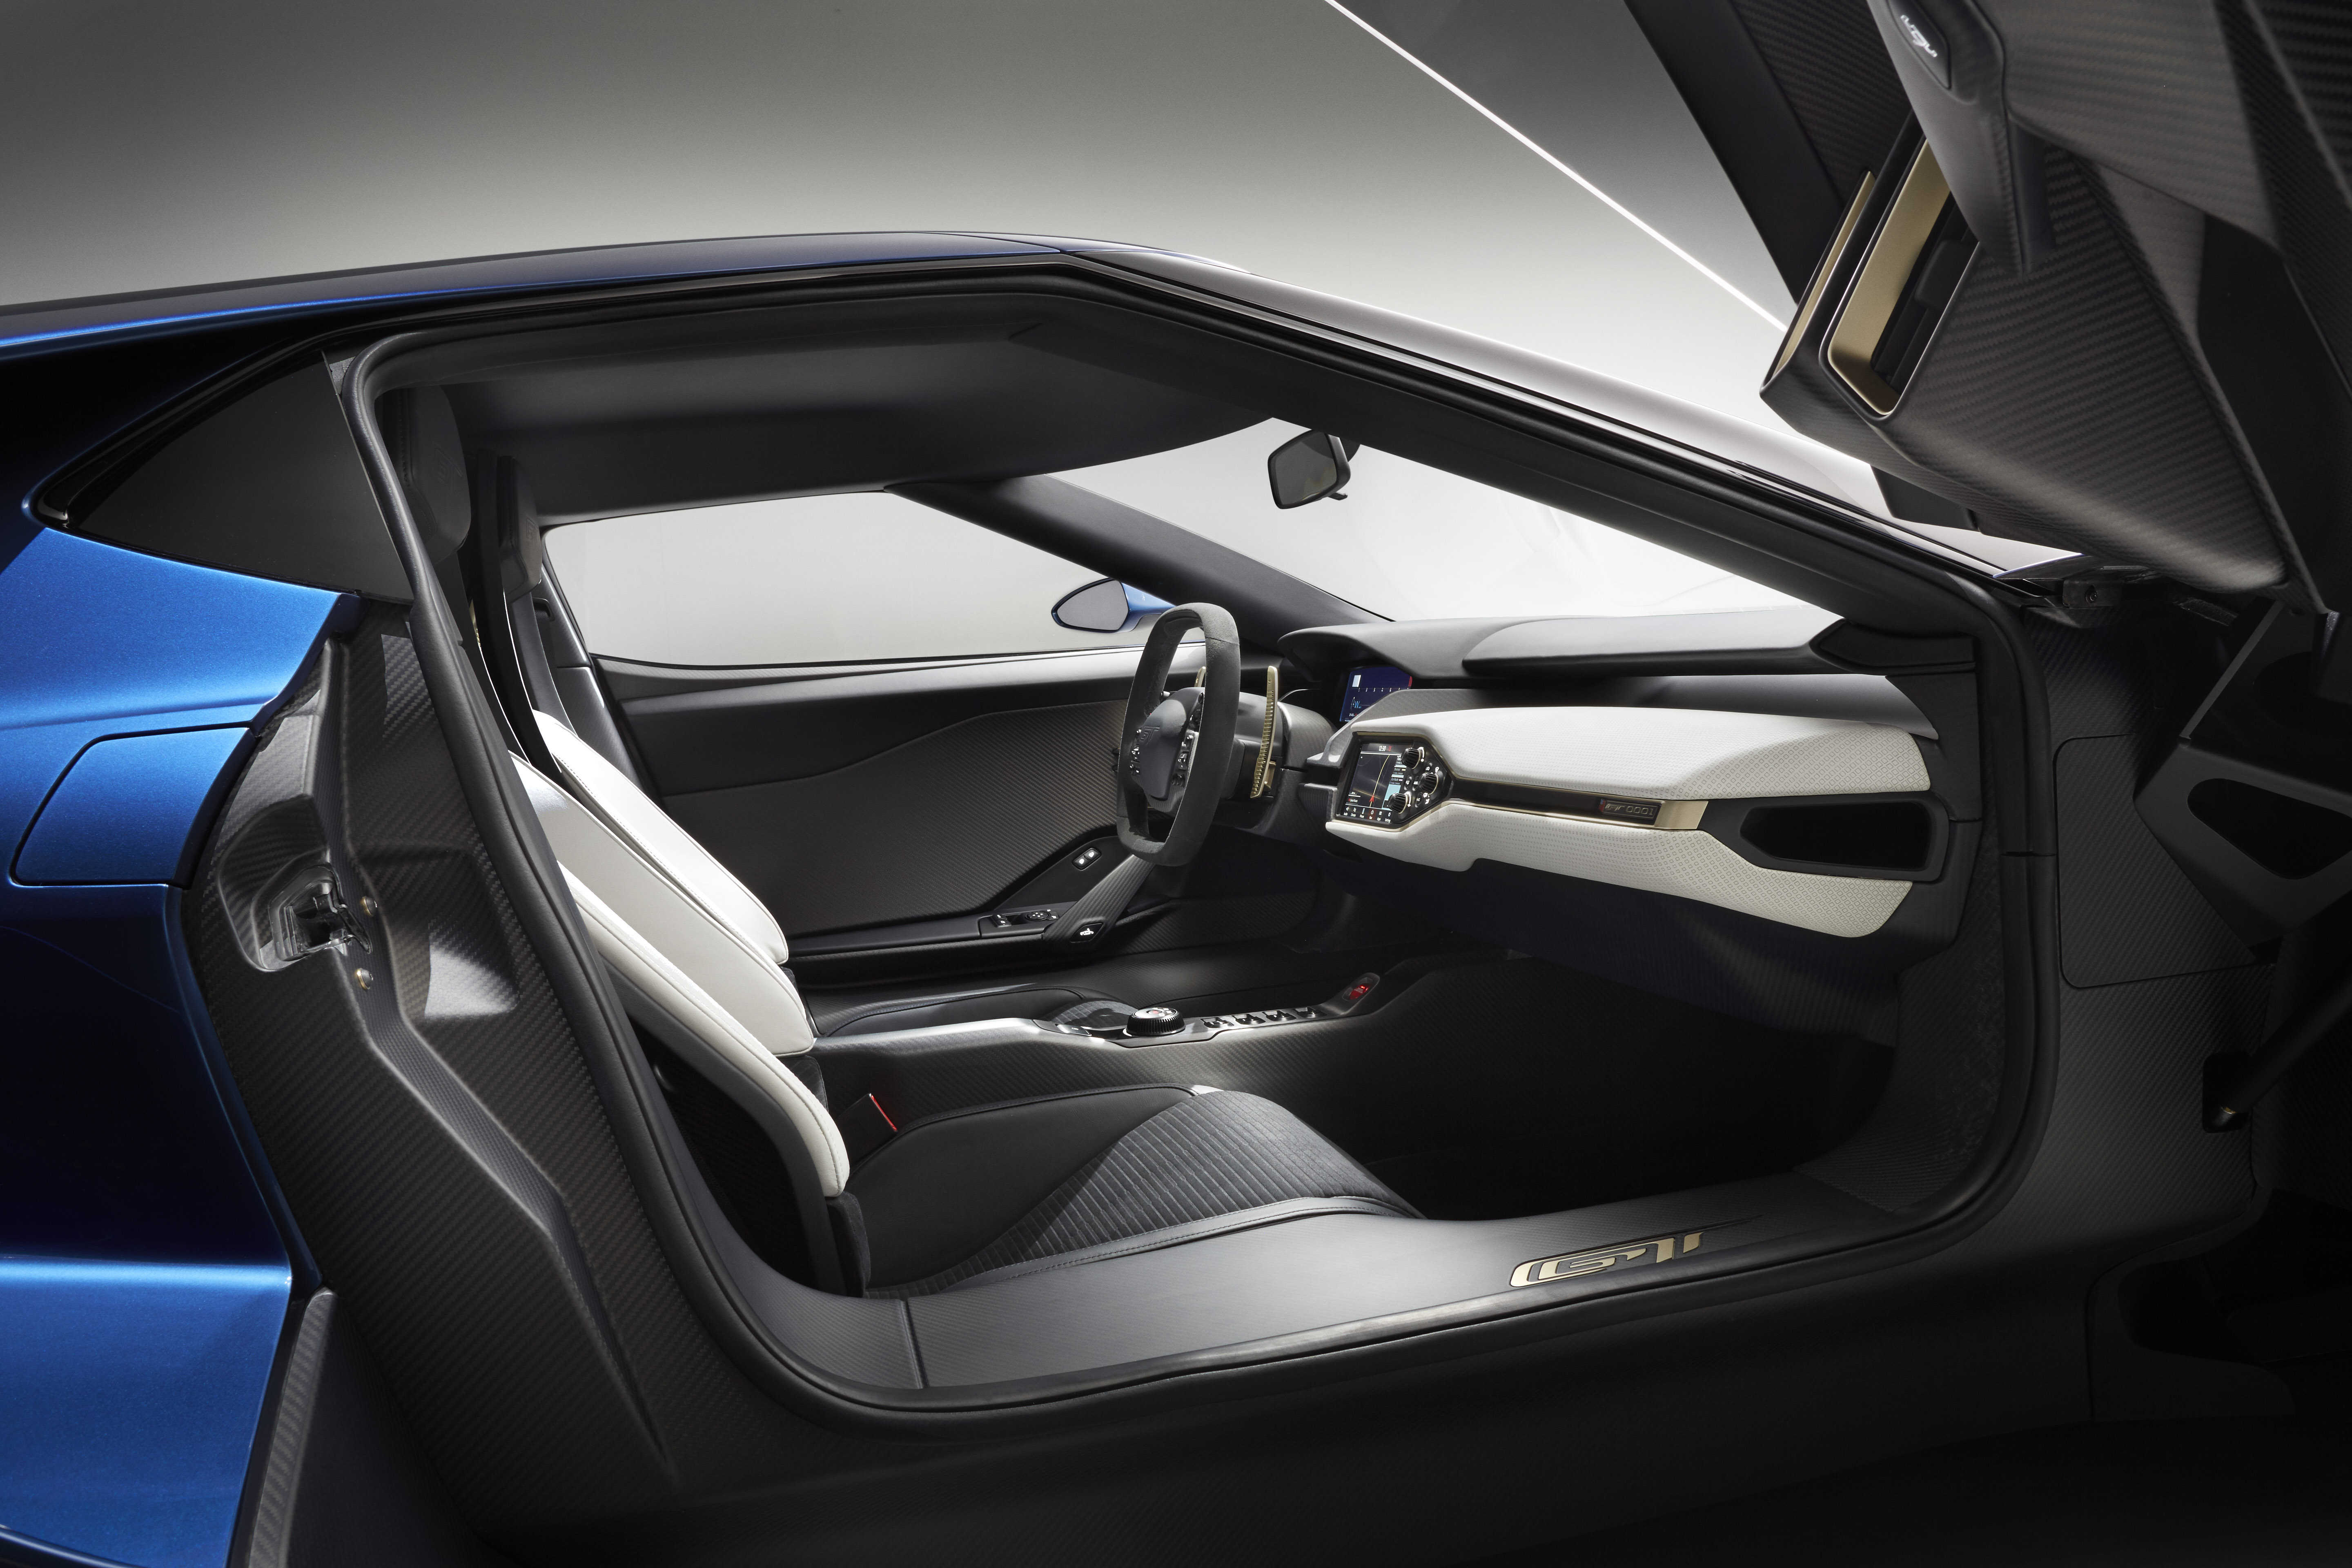 The purposeful interior on the all-new, two-seat, carbon-fiber, mid-engined Ford GT supercar is accessed by upward-swinging doors.